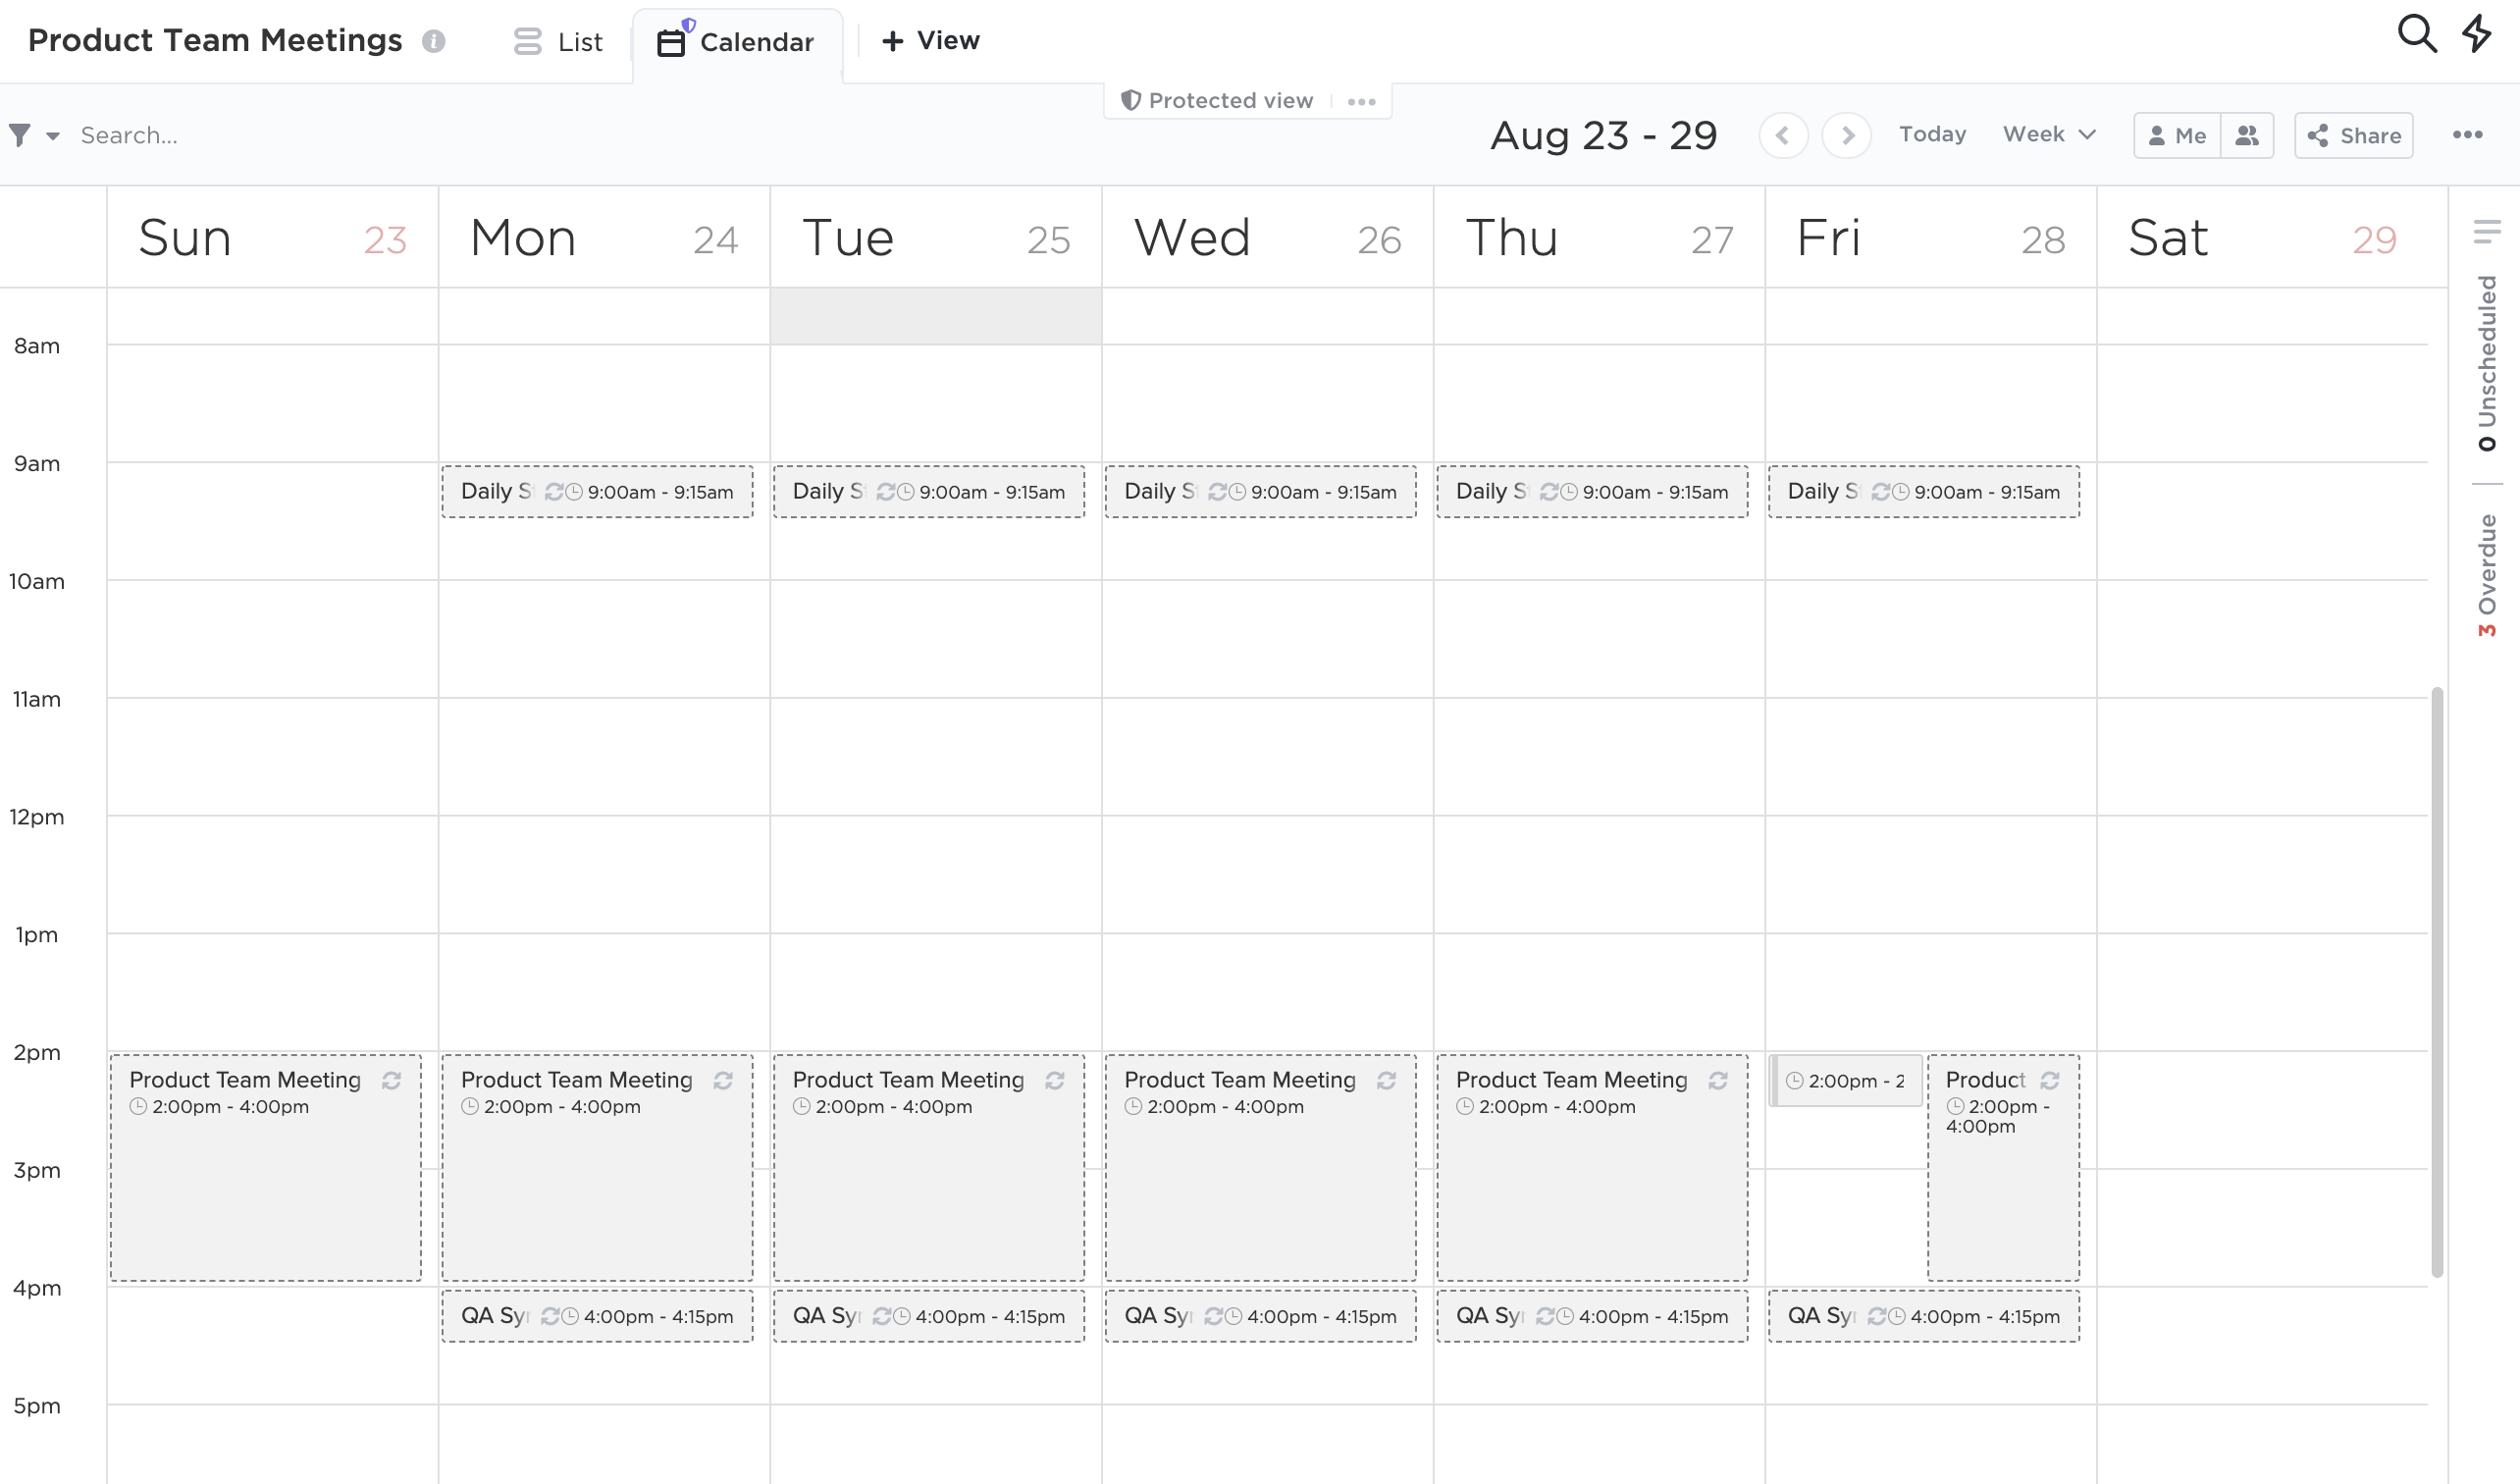 image of Calendar view showing a weekly perspective